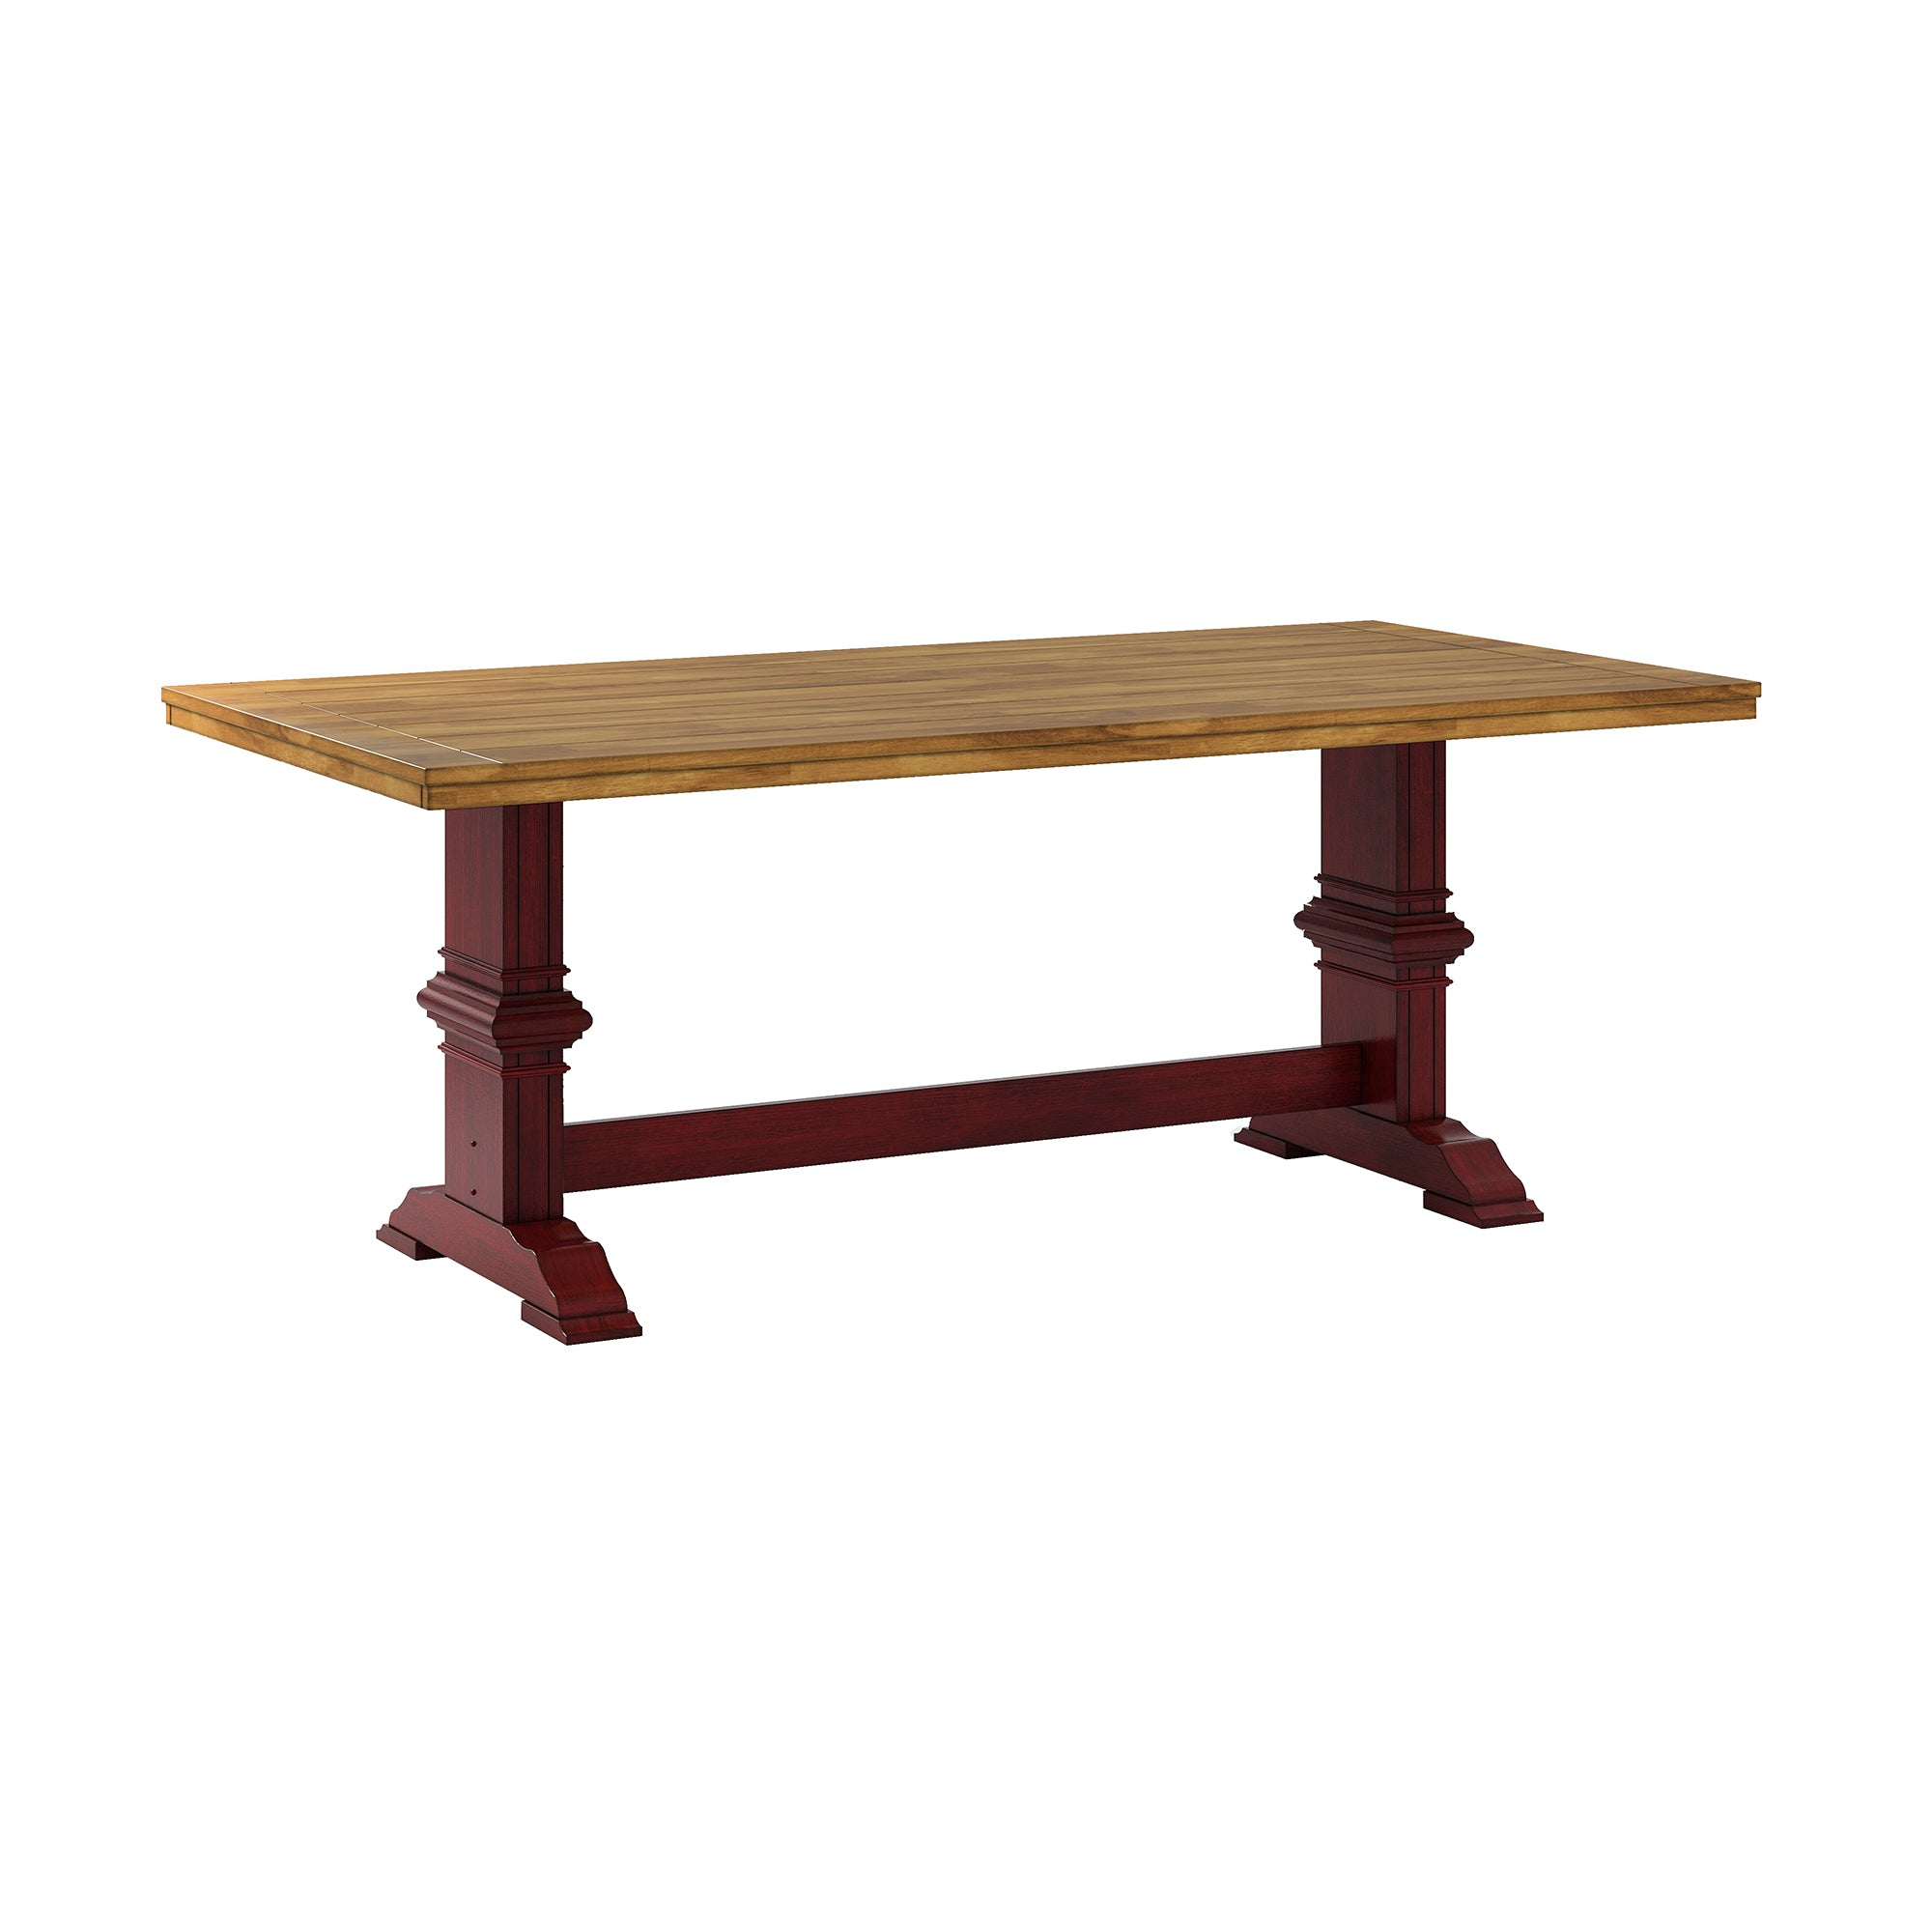 Two-Tone Rectangular Solid Wood Top Dining Table - Oak Top with Red Base